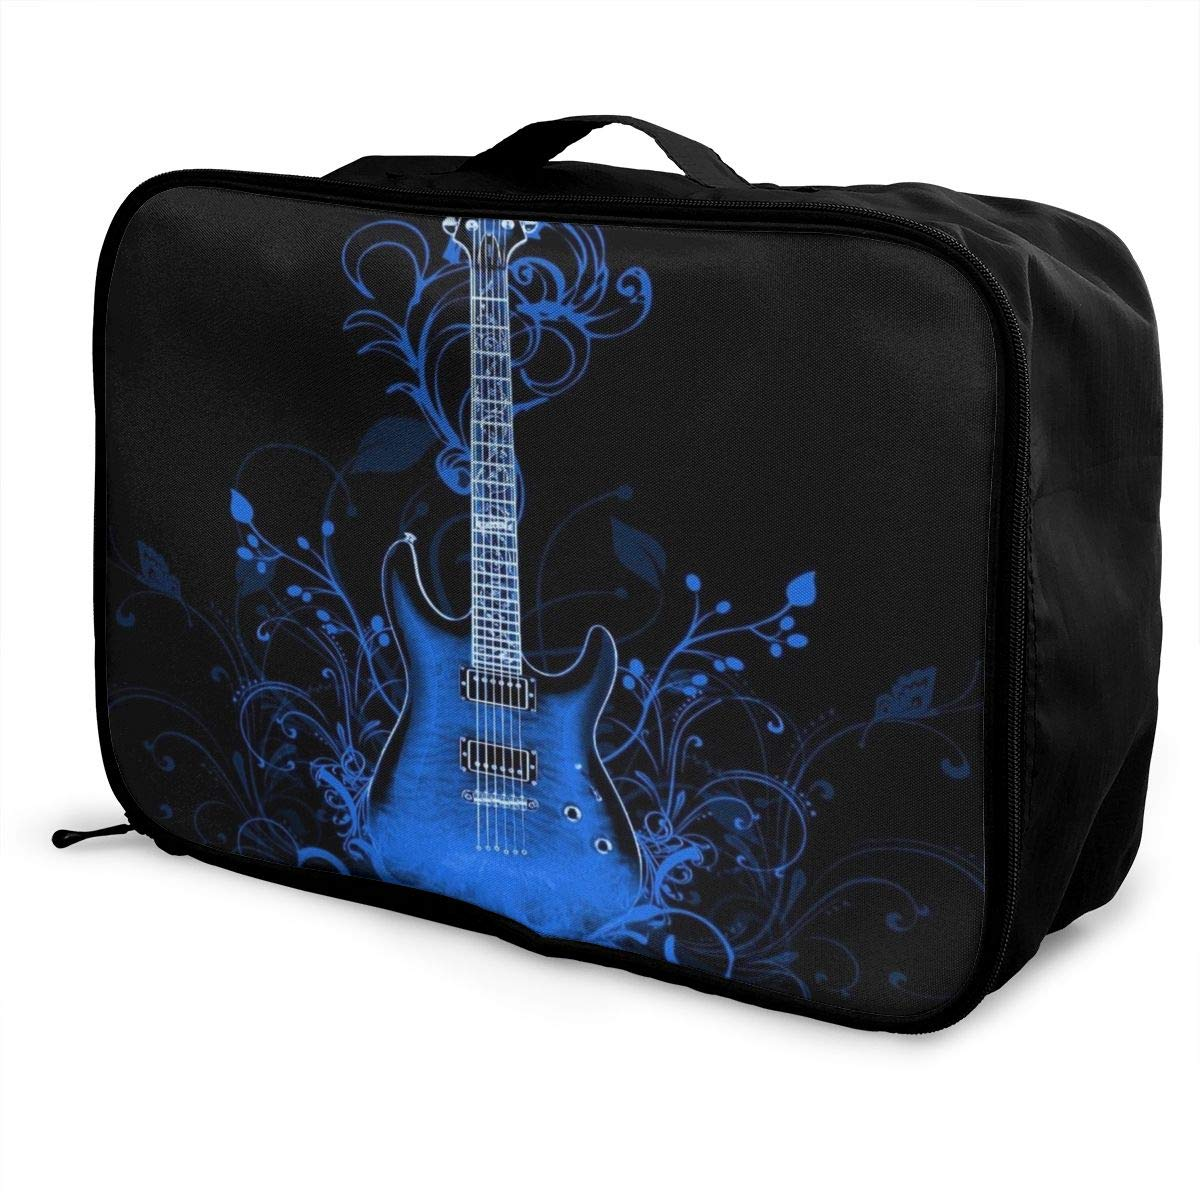 Floral Guitar Navu Blue Travel Lightweight Waterproof Folding Storage Portable Luggage Duffle Tote Bag Large Capacity In Trolley Handle Bags 6x11x15 Inch